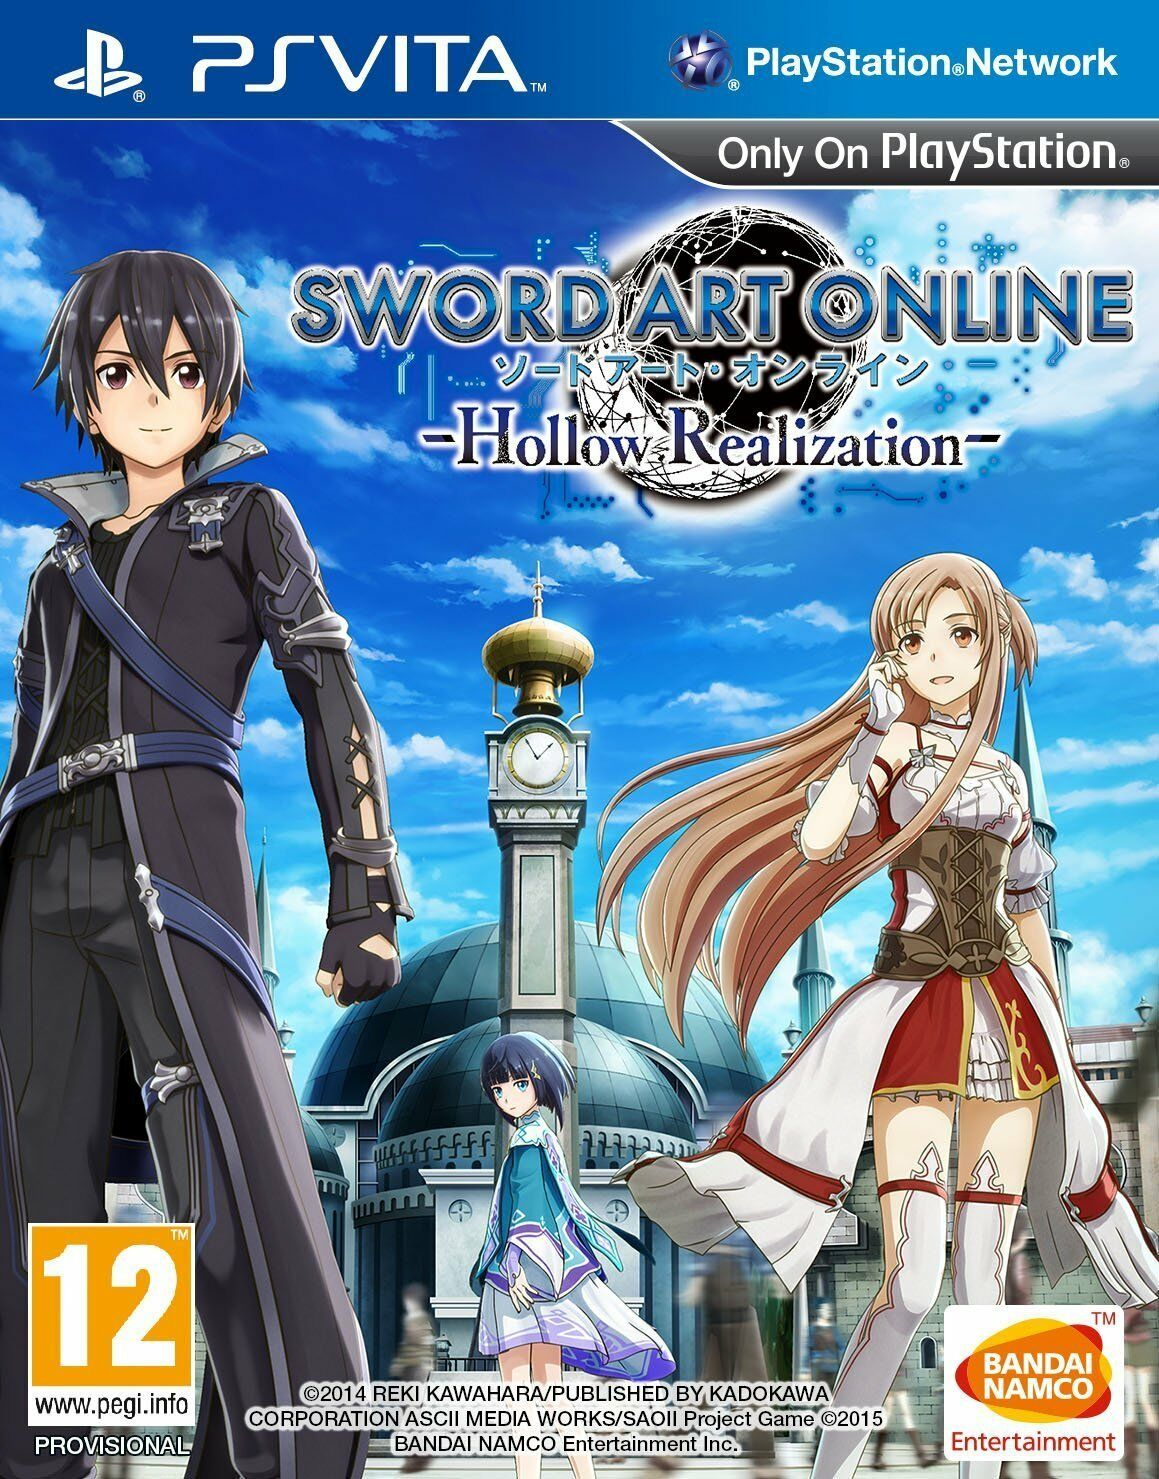 Sword Art Online: Hollow Realization [Sony PlayStation Vita, PSV, RPG] NEW